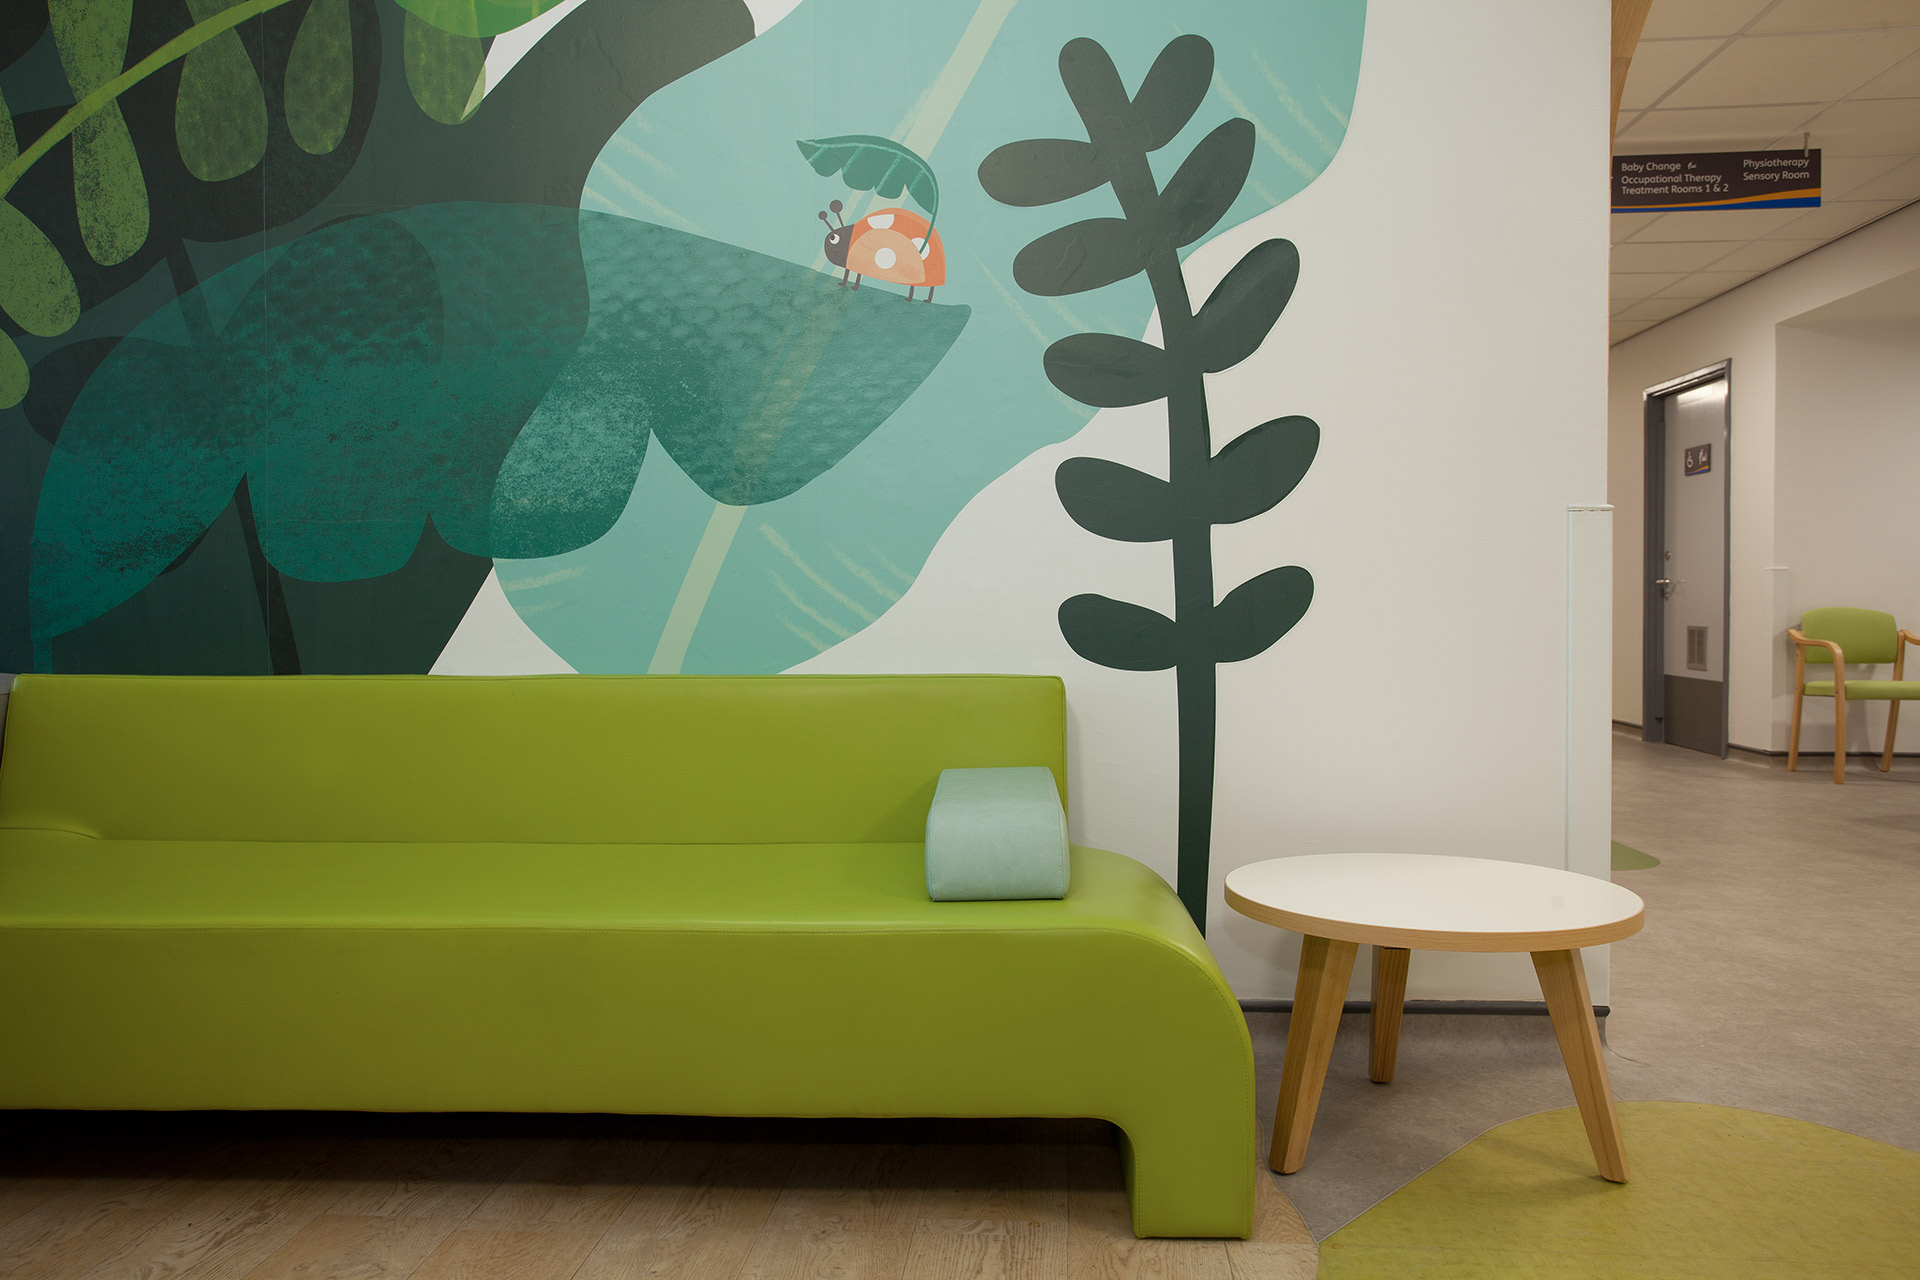 Infection safe upholstery in bright colours to compliment wall graphics